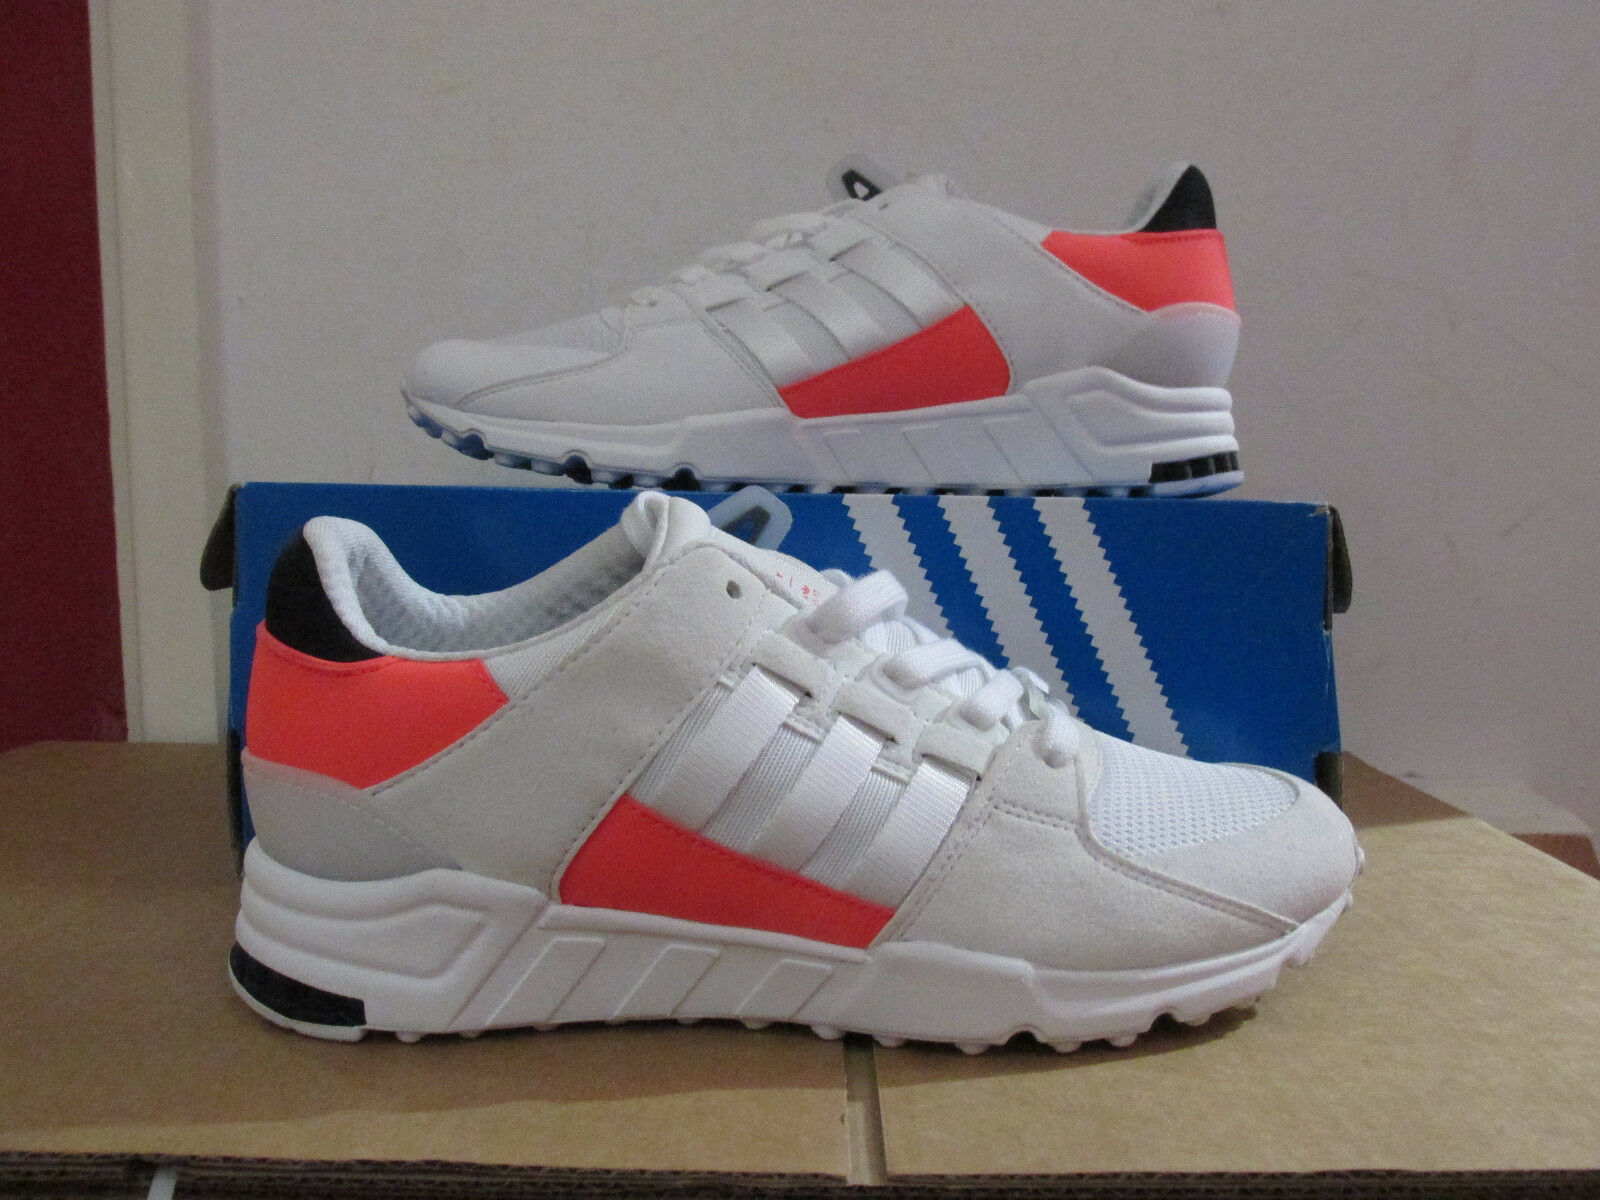 Adidas Originals Eqt Support Rf BA7716 Mens Running Trainers Sneakers CLEARANCE